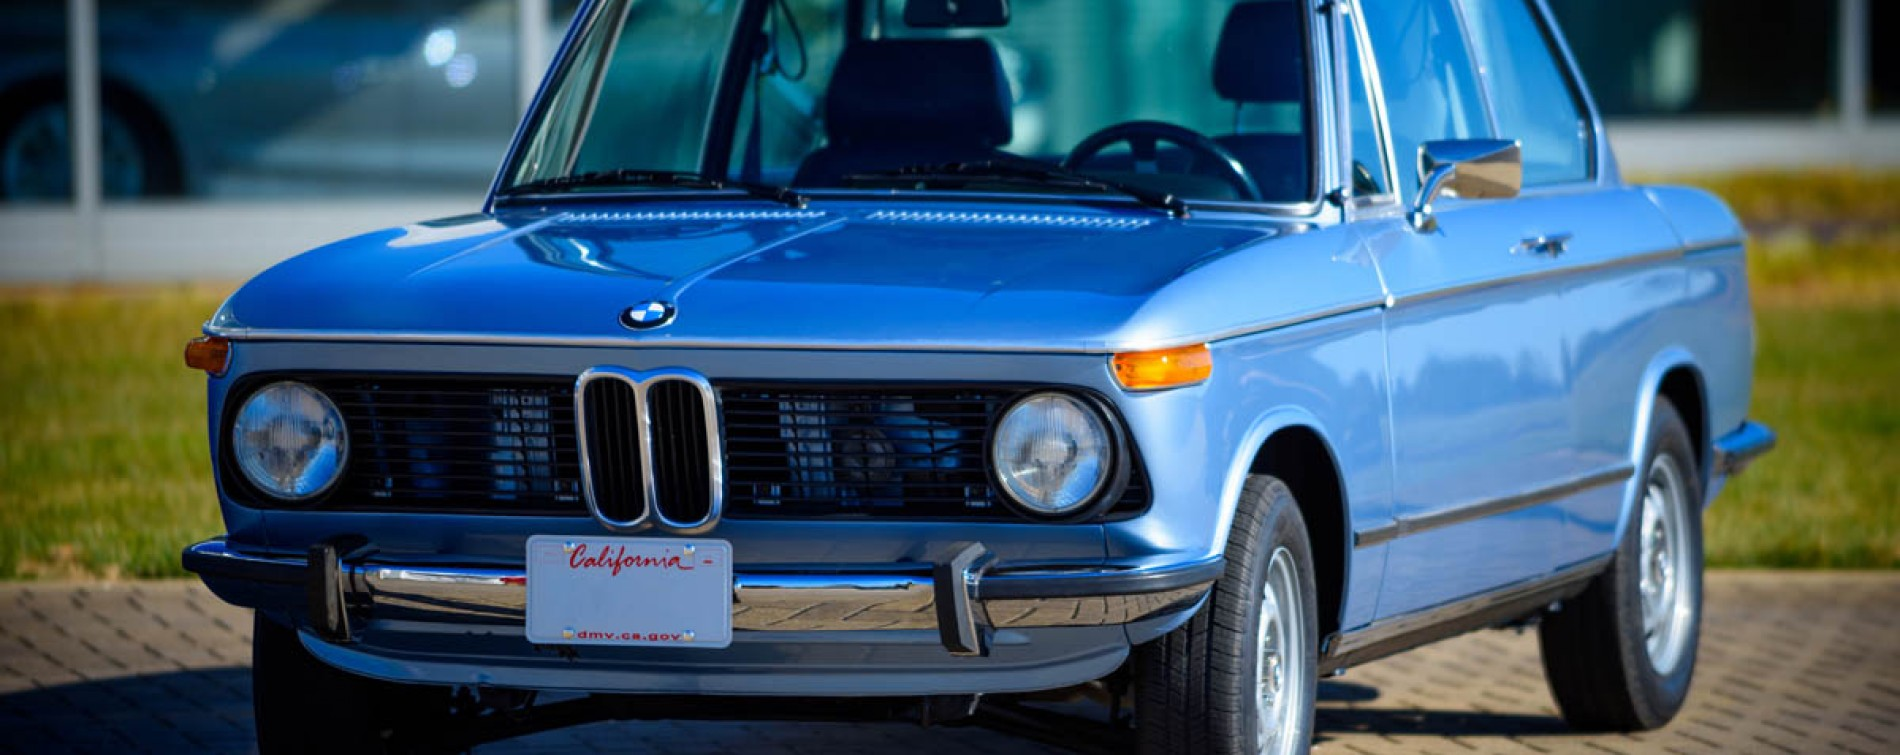 Volvo Dealers Nh >> Wheeler Dealers » BMW 2002 tii